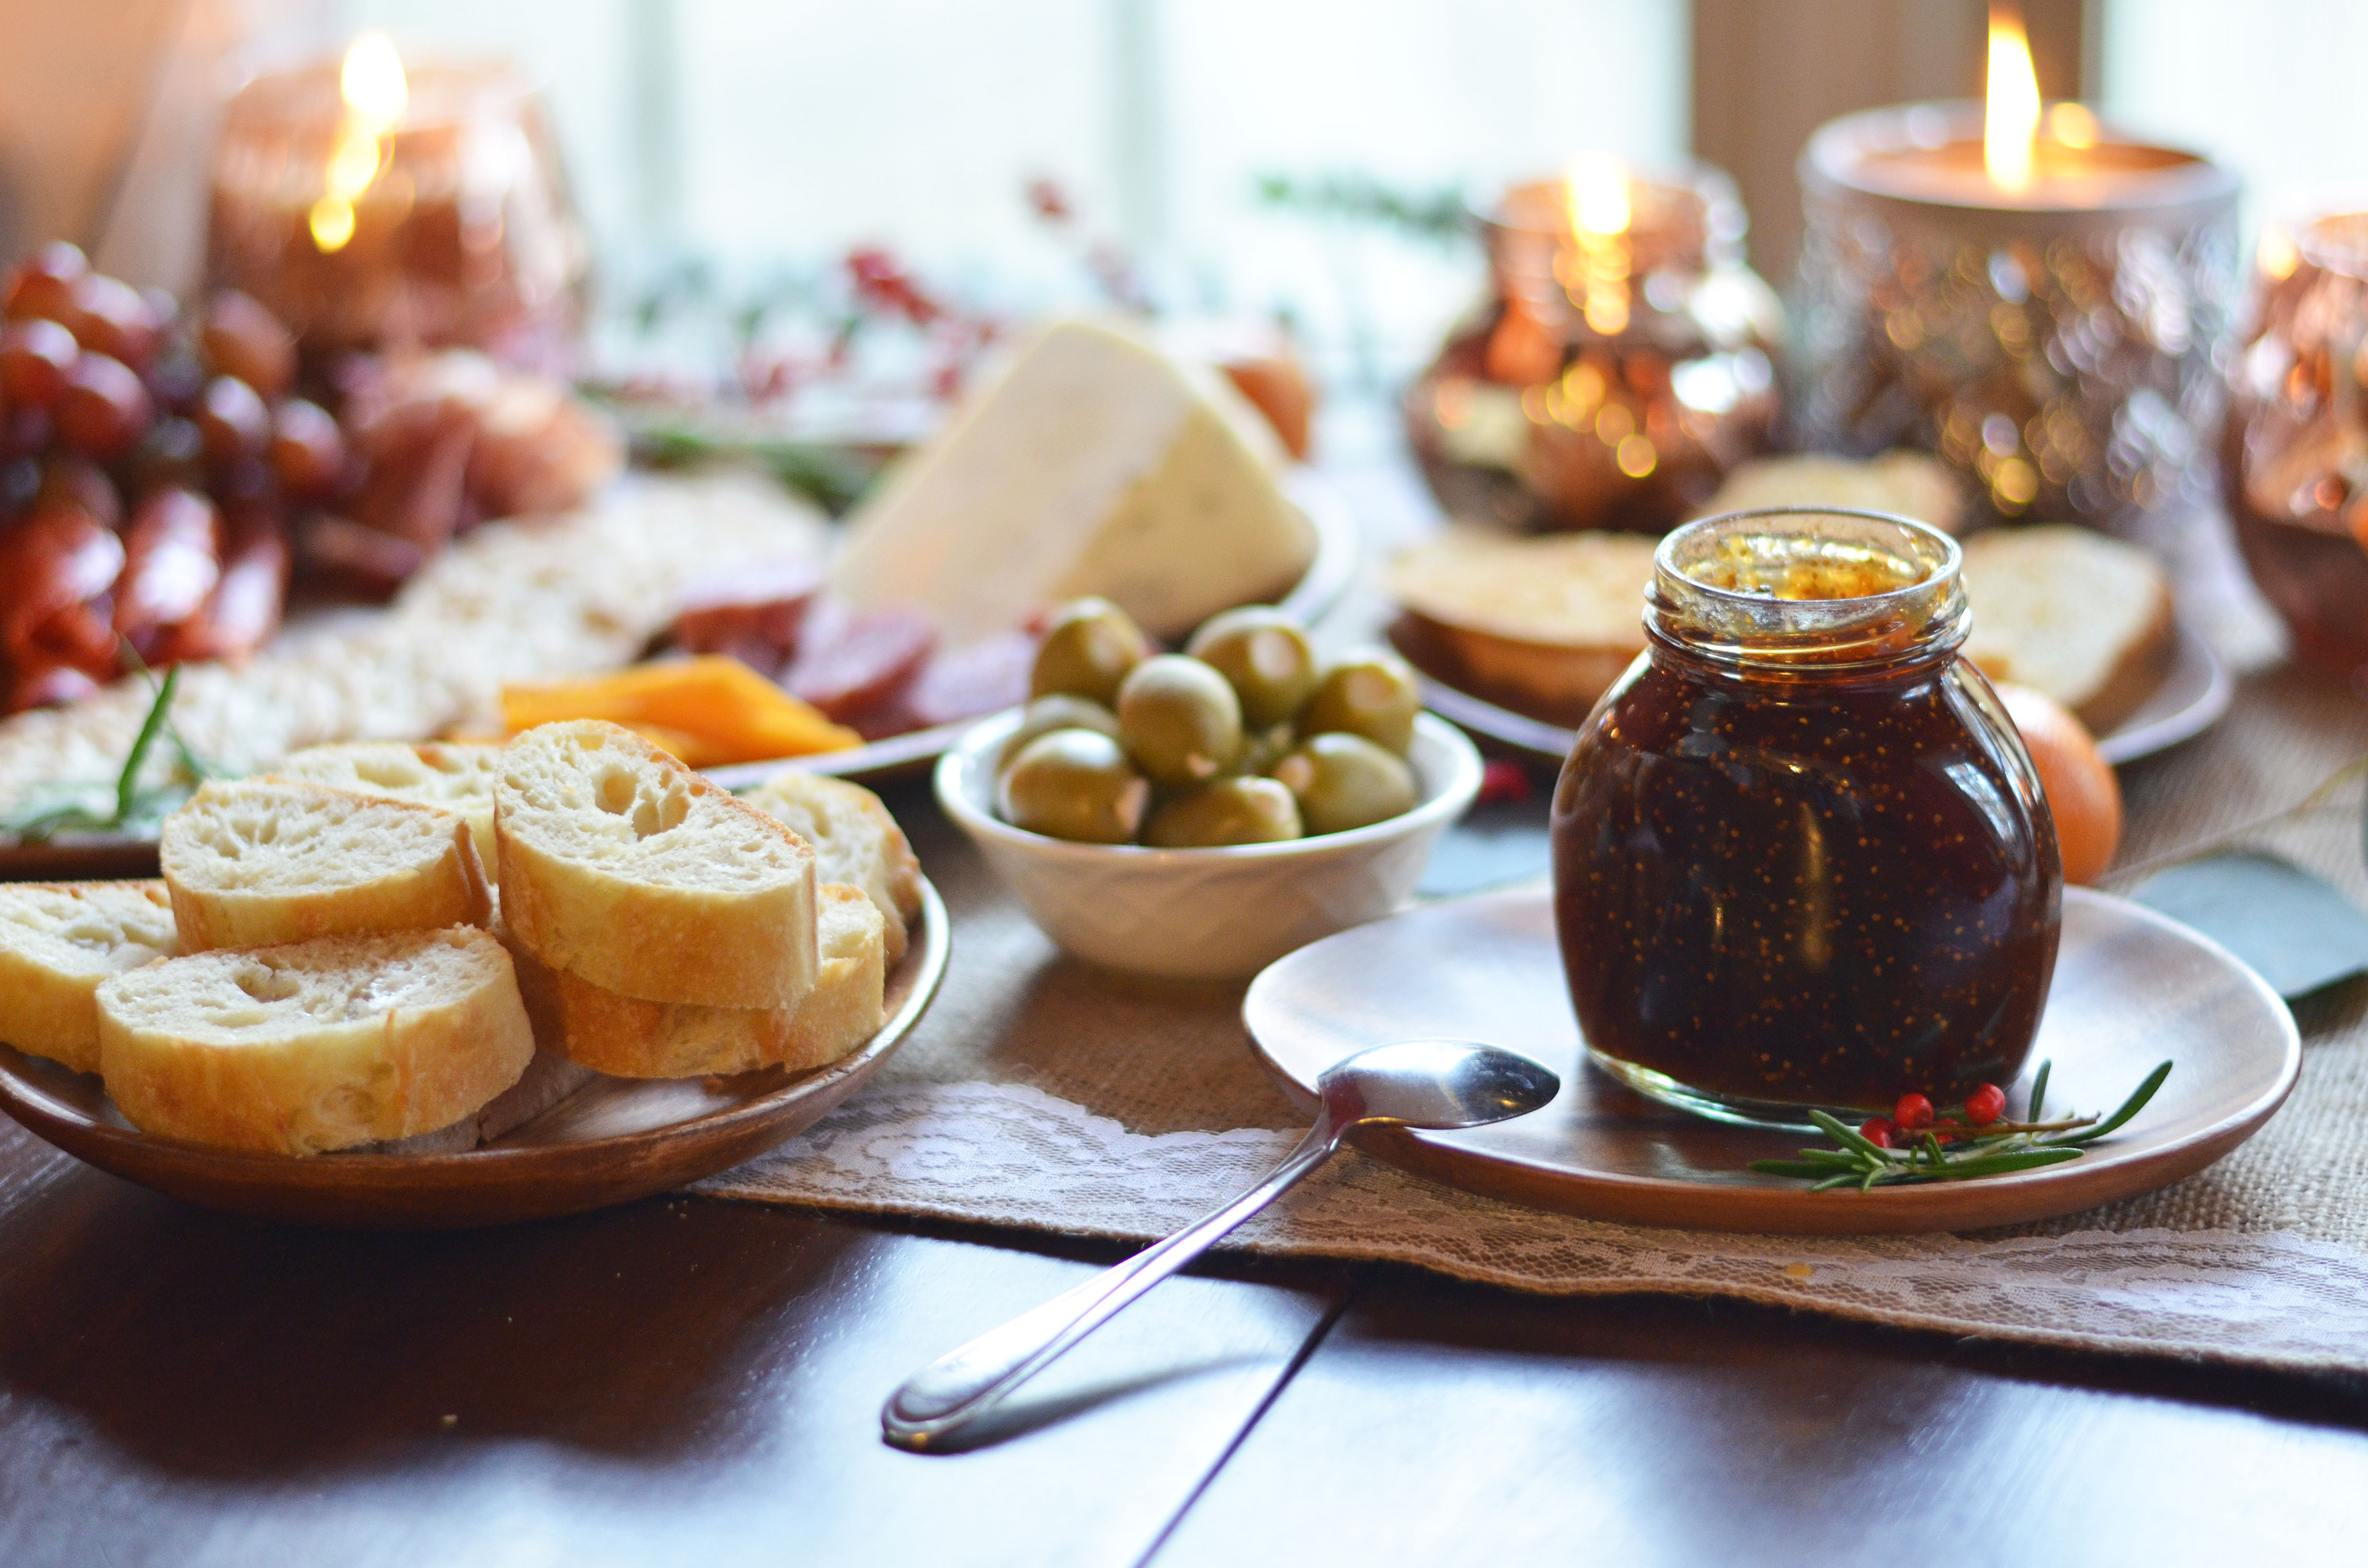 diy meat and cheese plate for entertaining - diy holiday charcuterie spread | www.bylaurenm.com